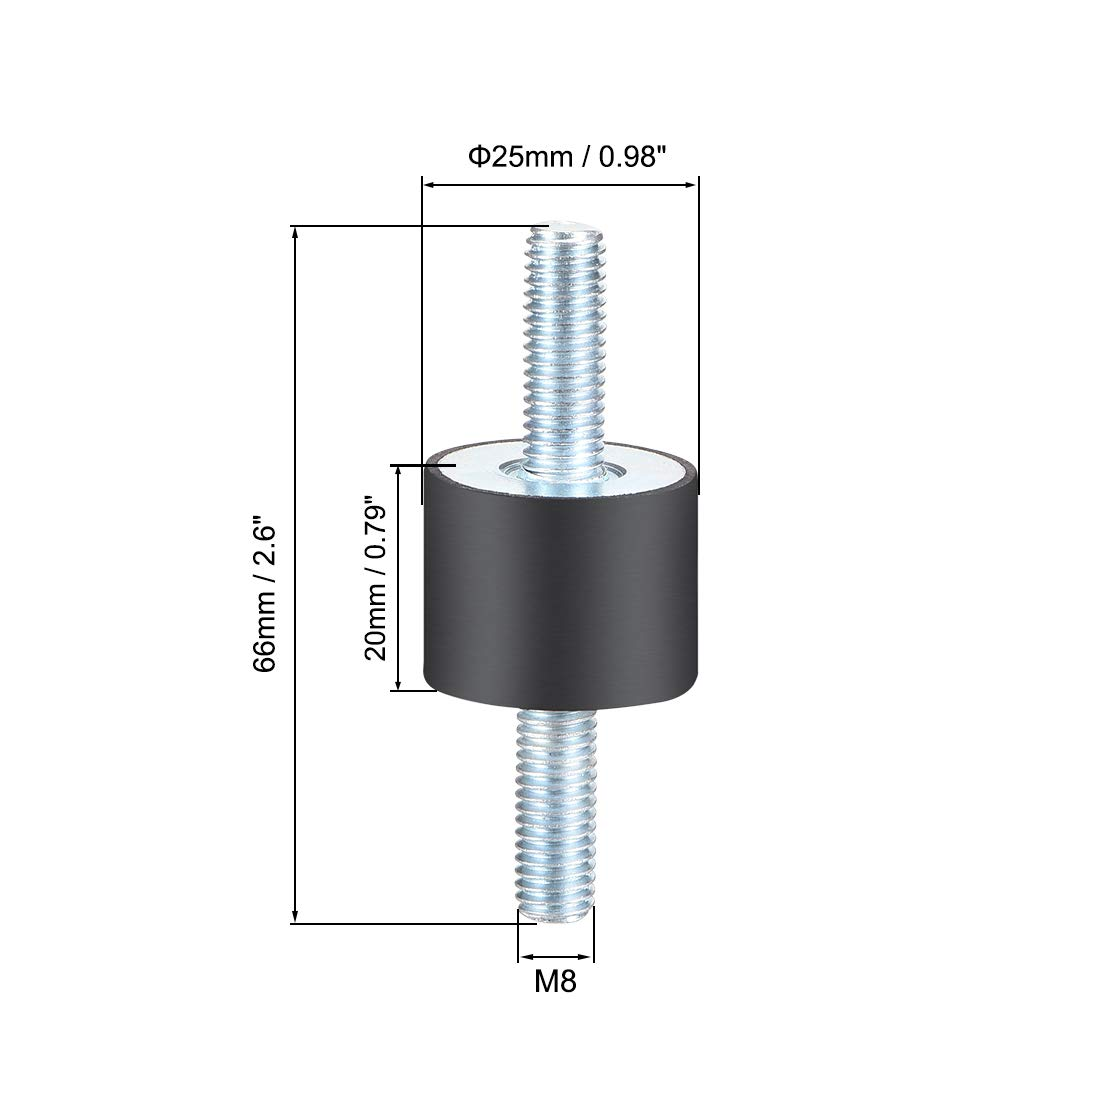 uxcell 30 x 20mm Rubber Mounts,Vibration Isolators,Shock Absorber with M8 x 23mm Studs